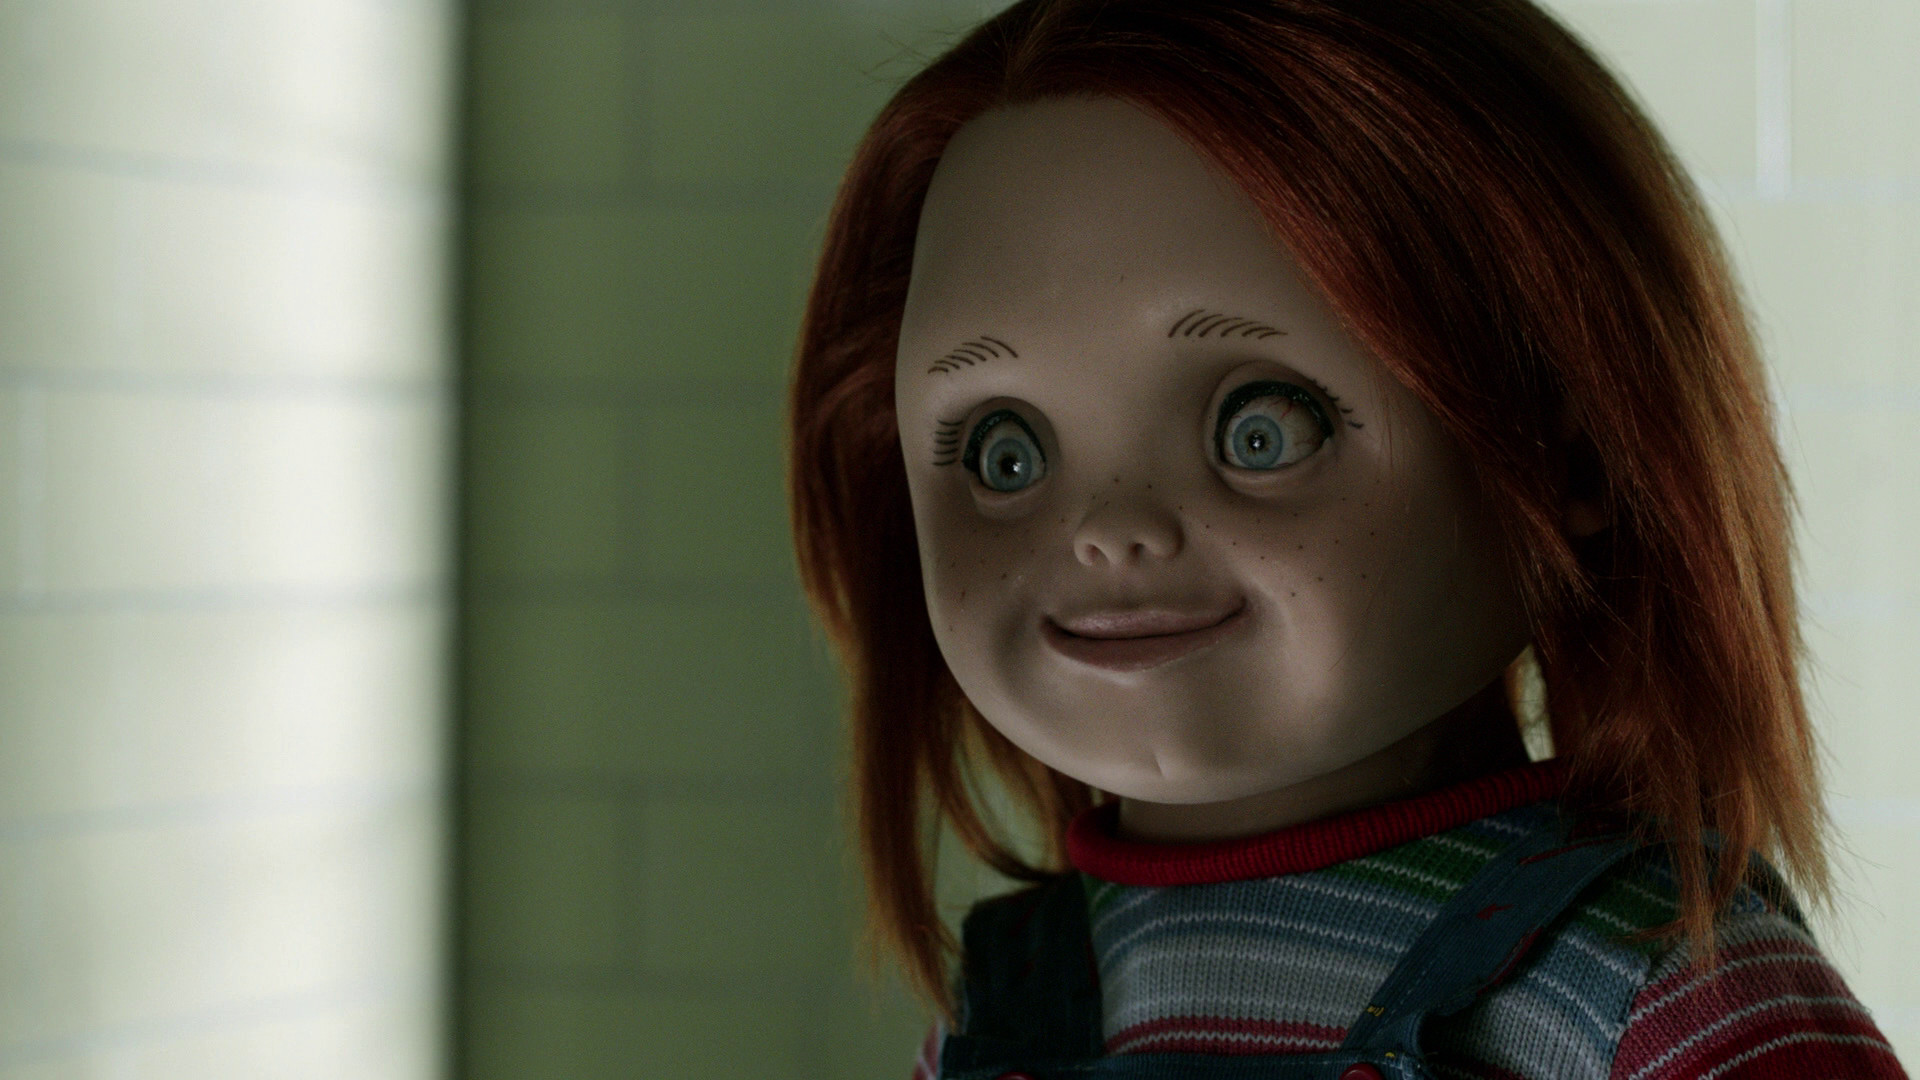 Get free high quality HD wallpapers chucky doll wallpaper hd